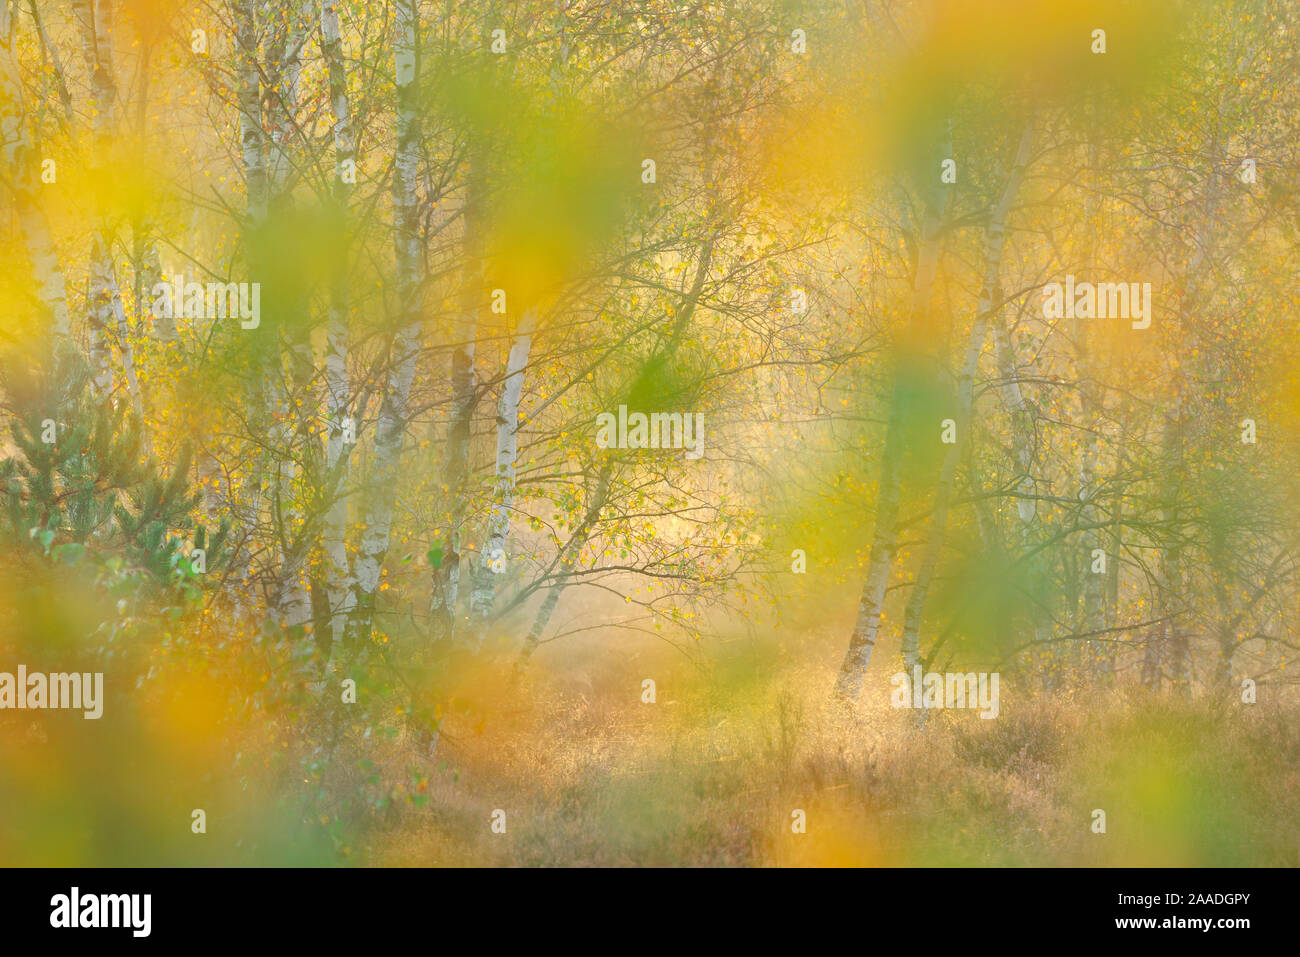 Silver birch (Betula pendula) woodland abstract soft focus  in autumn, on  former military training area, Loeffelberg, Nuthe-Nieplitz natural reserve, Brandenburg, Germany, October. Stock Photo